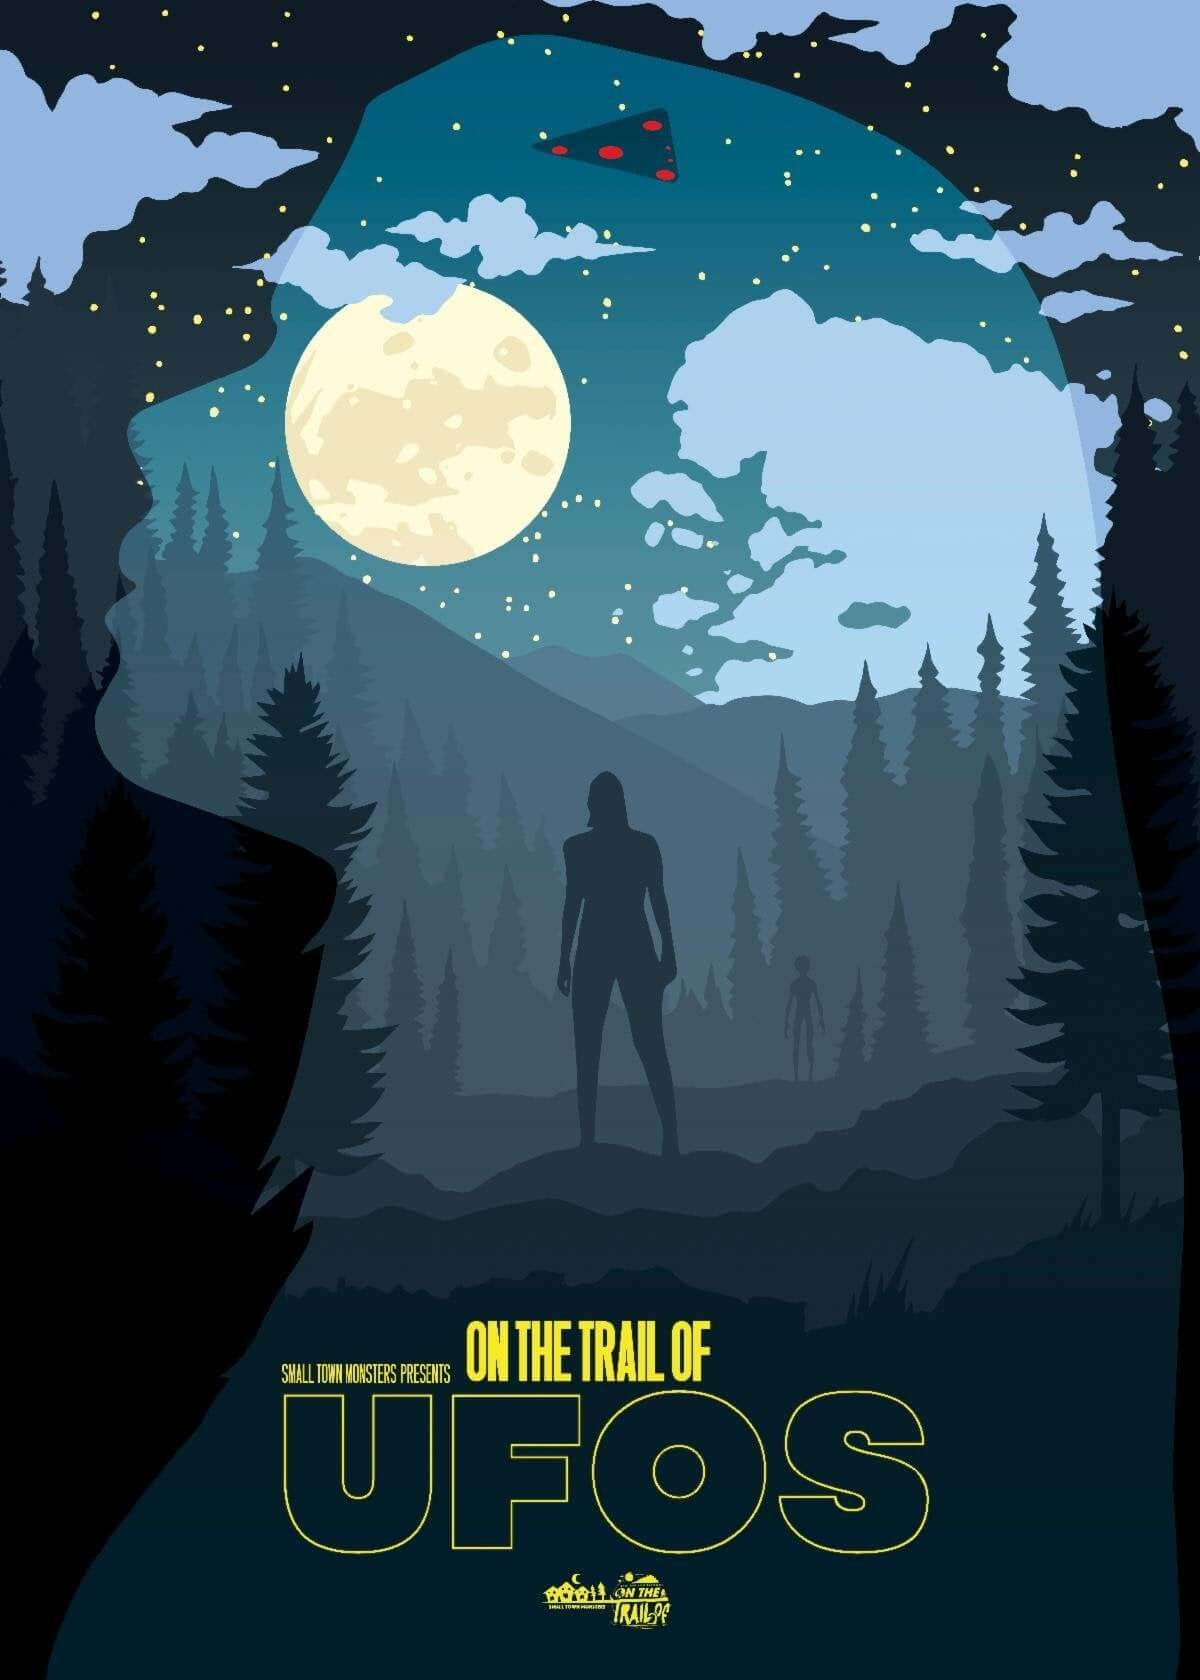 On the Trail of UFOS Alien Conspiracy